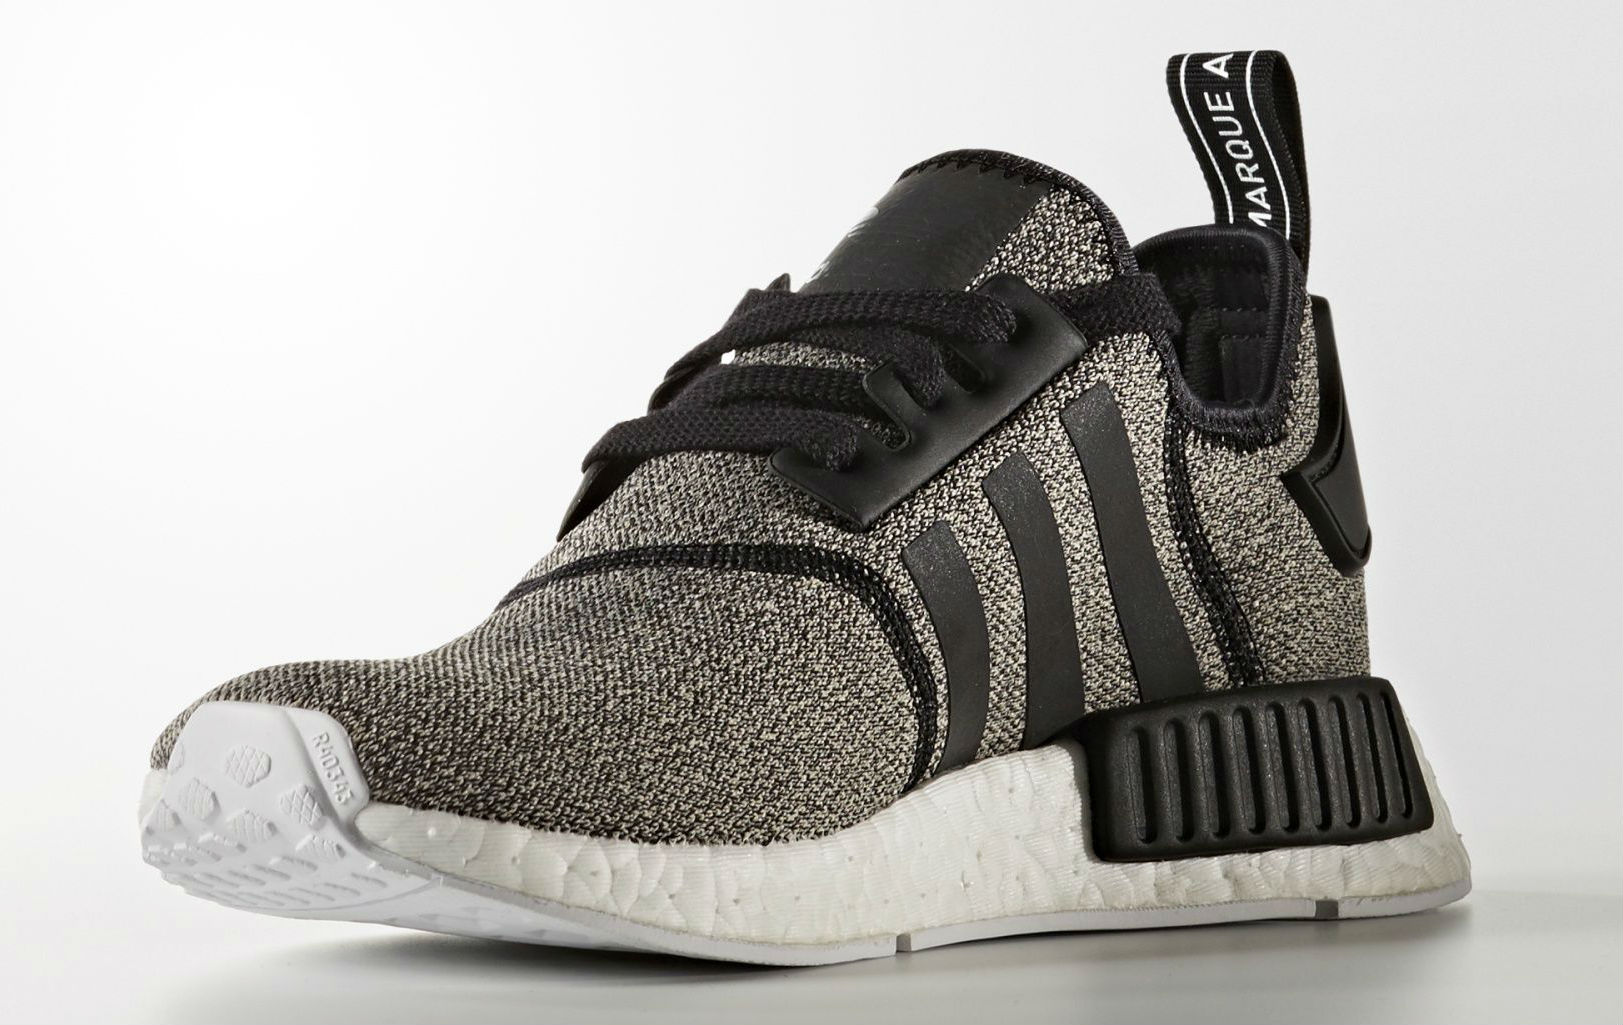 adidas NMD Black/White Reflective Medial